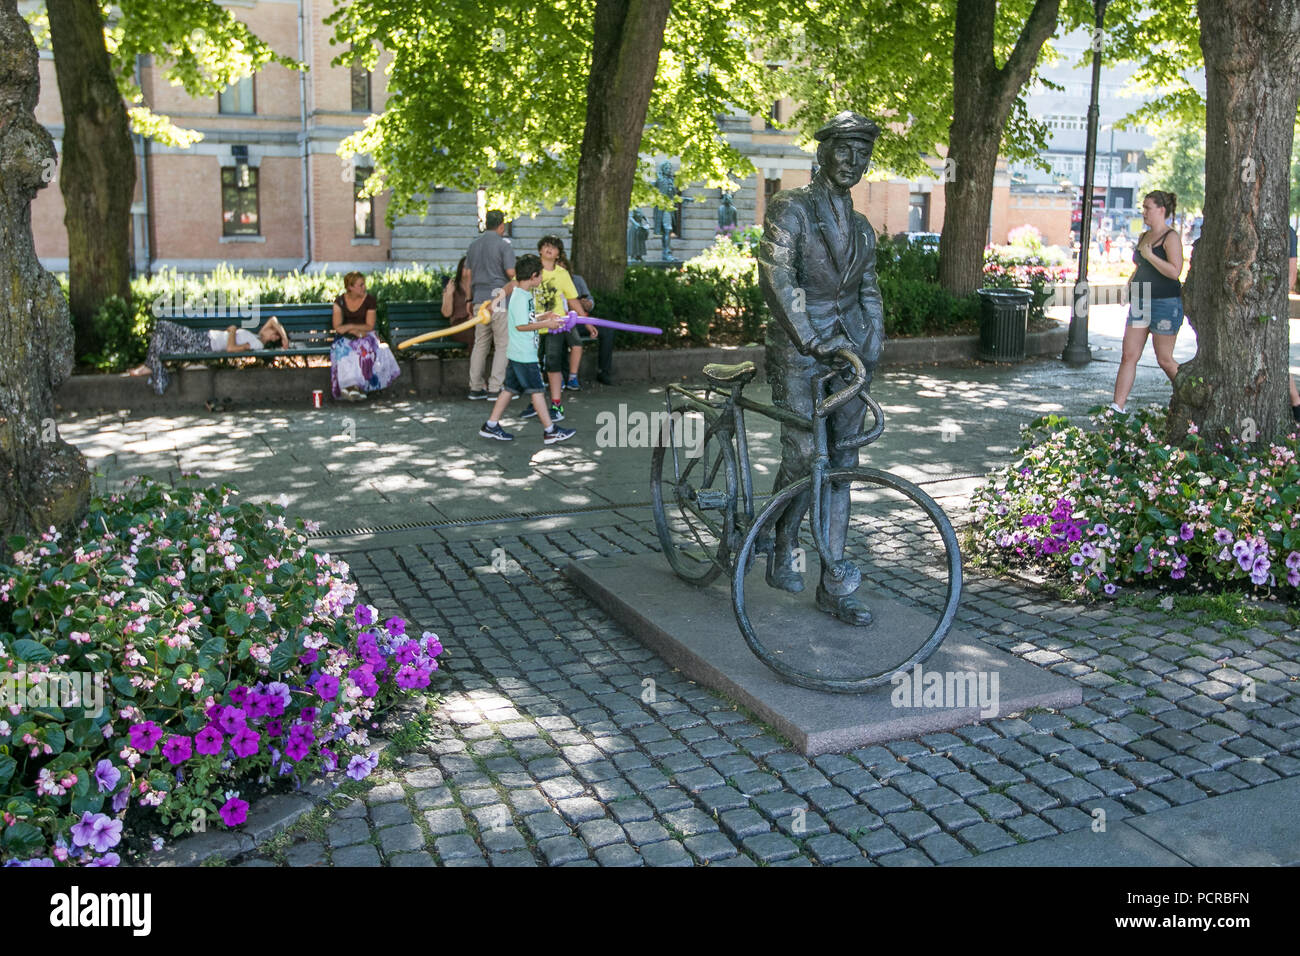 Oslo, Norway, July 21, 2018: 'Man with a bike' - a statue by Norwegian artist Per Ung near National Theater. - Stock Image